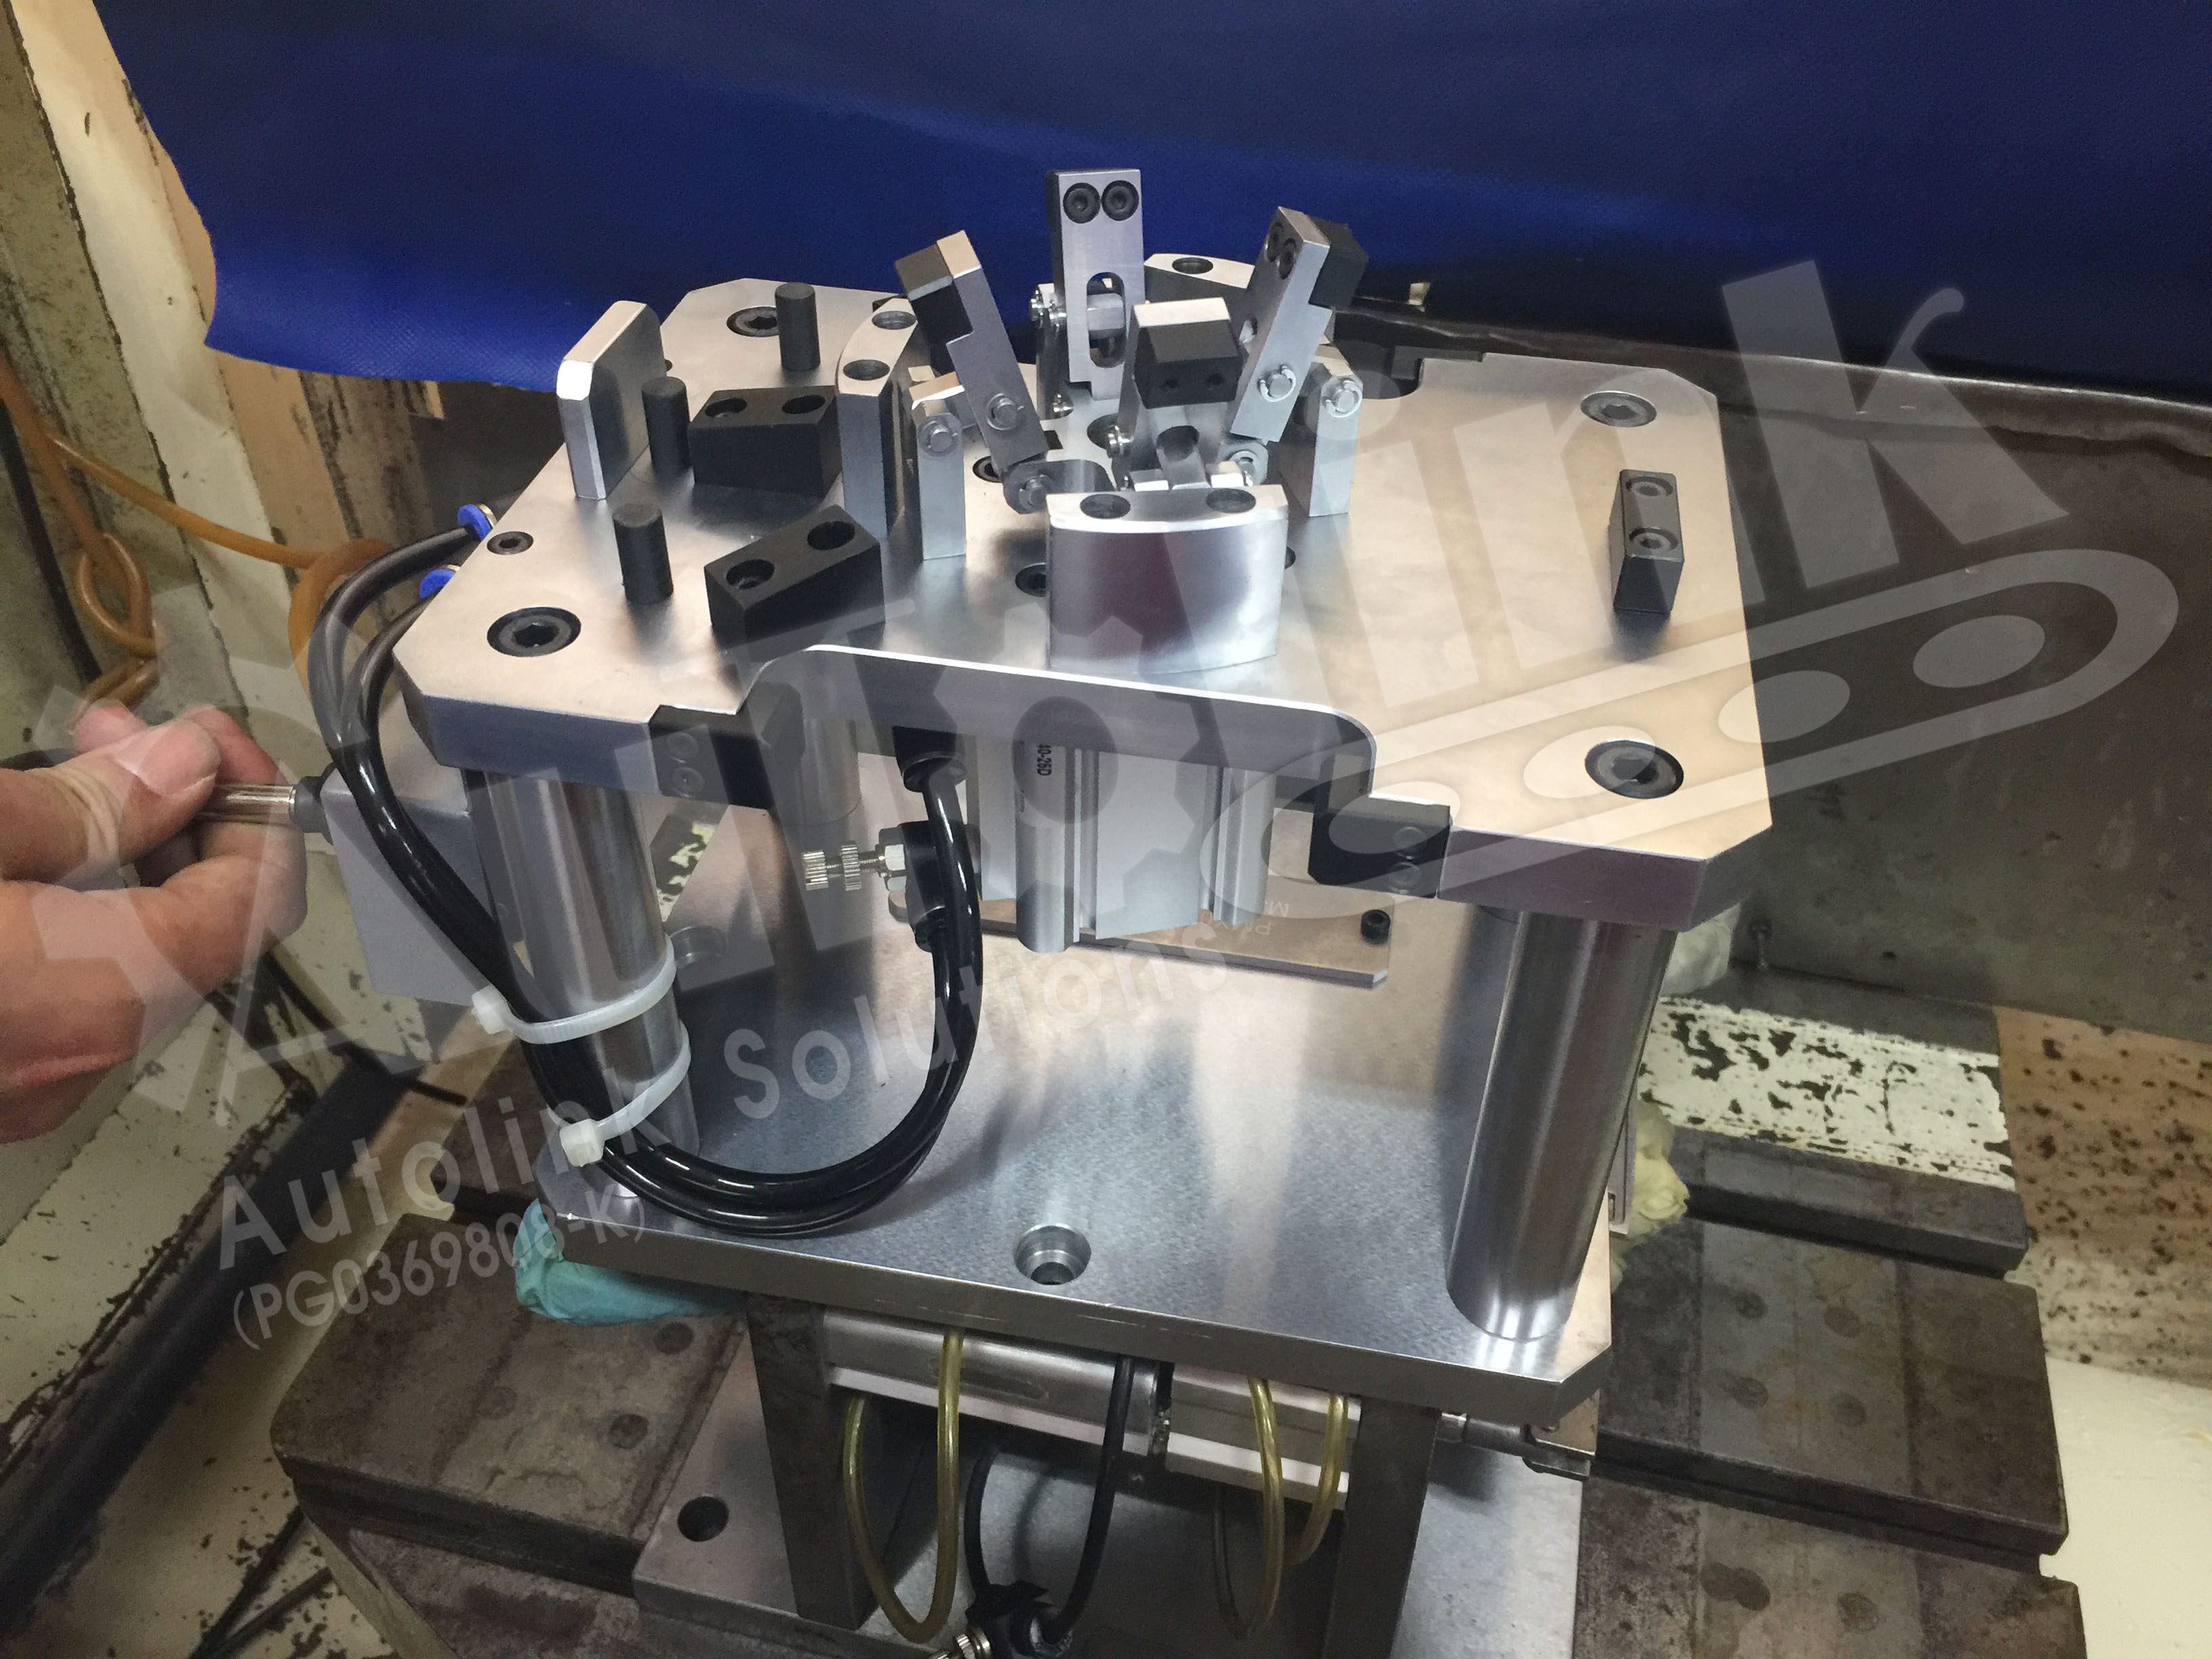 Machining Jigs And Fixtures : Jig fixture automation autolink solution engineering